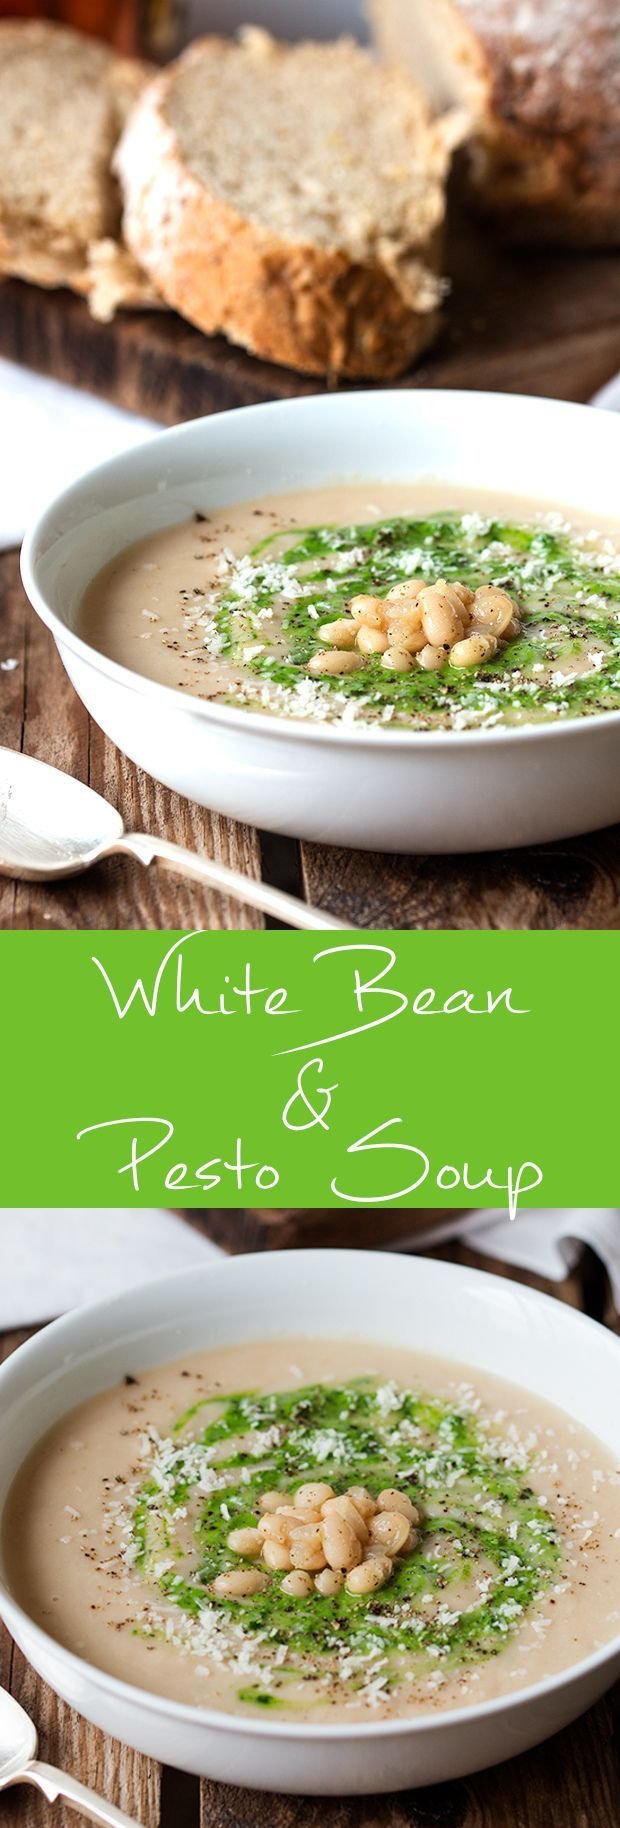 A warming, creamy, white bean soup, swirled with pesto and parmesan. Shop for bulk ingredients and kitchen supplies at http://www.roundeyesupply.com/restaurant-food-supplies-s/24.htm